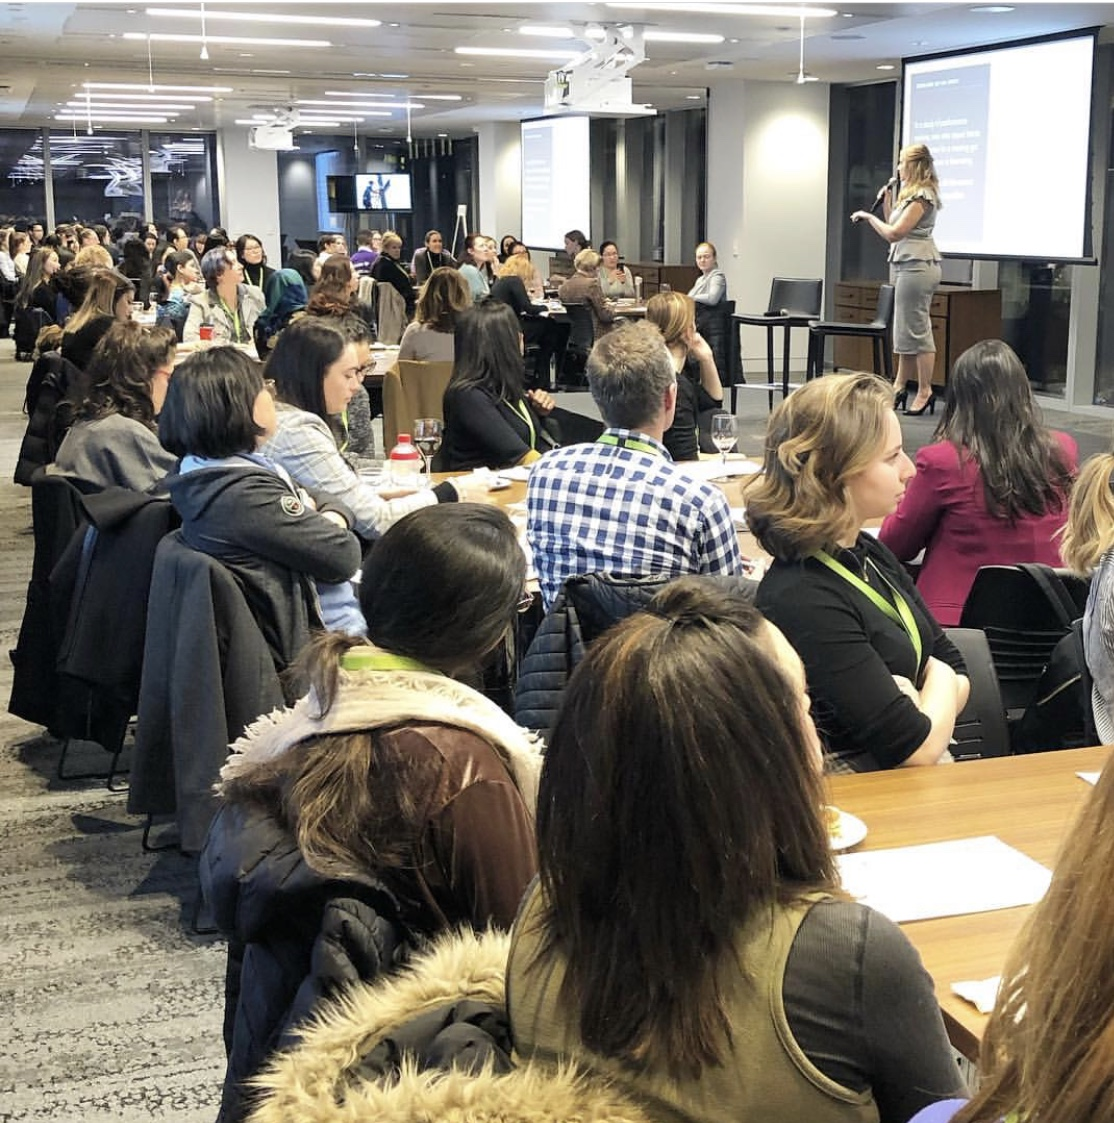 bias training at LeAn iN CANADA (Toronto) on international women's day -